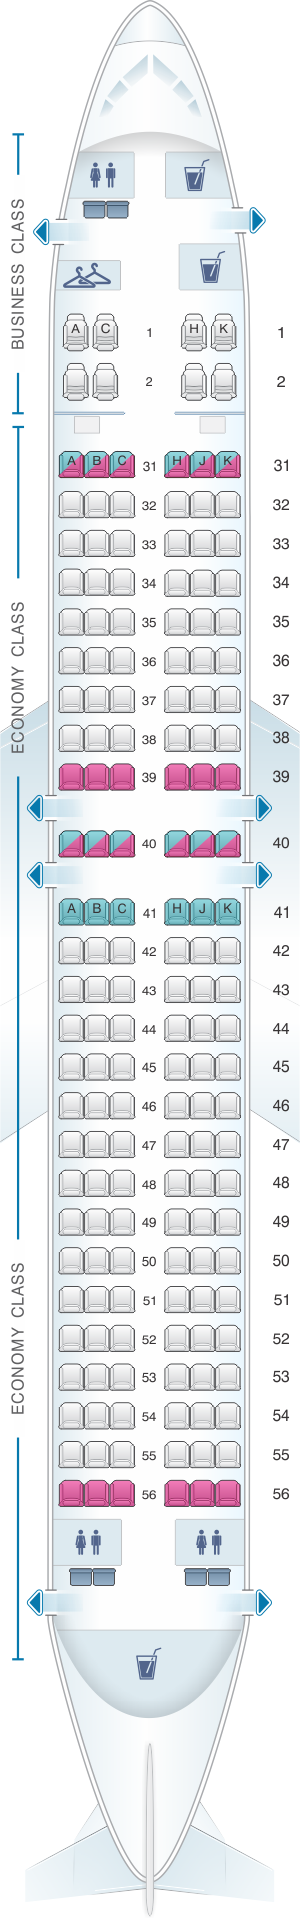 Seat map for Hainan Airlines Boeing B737 800